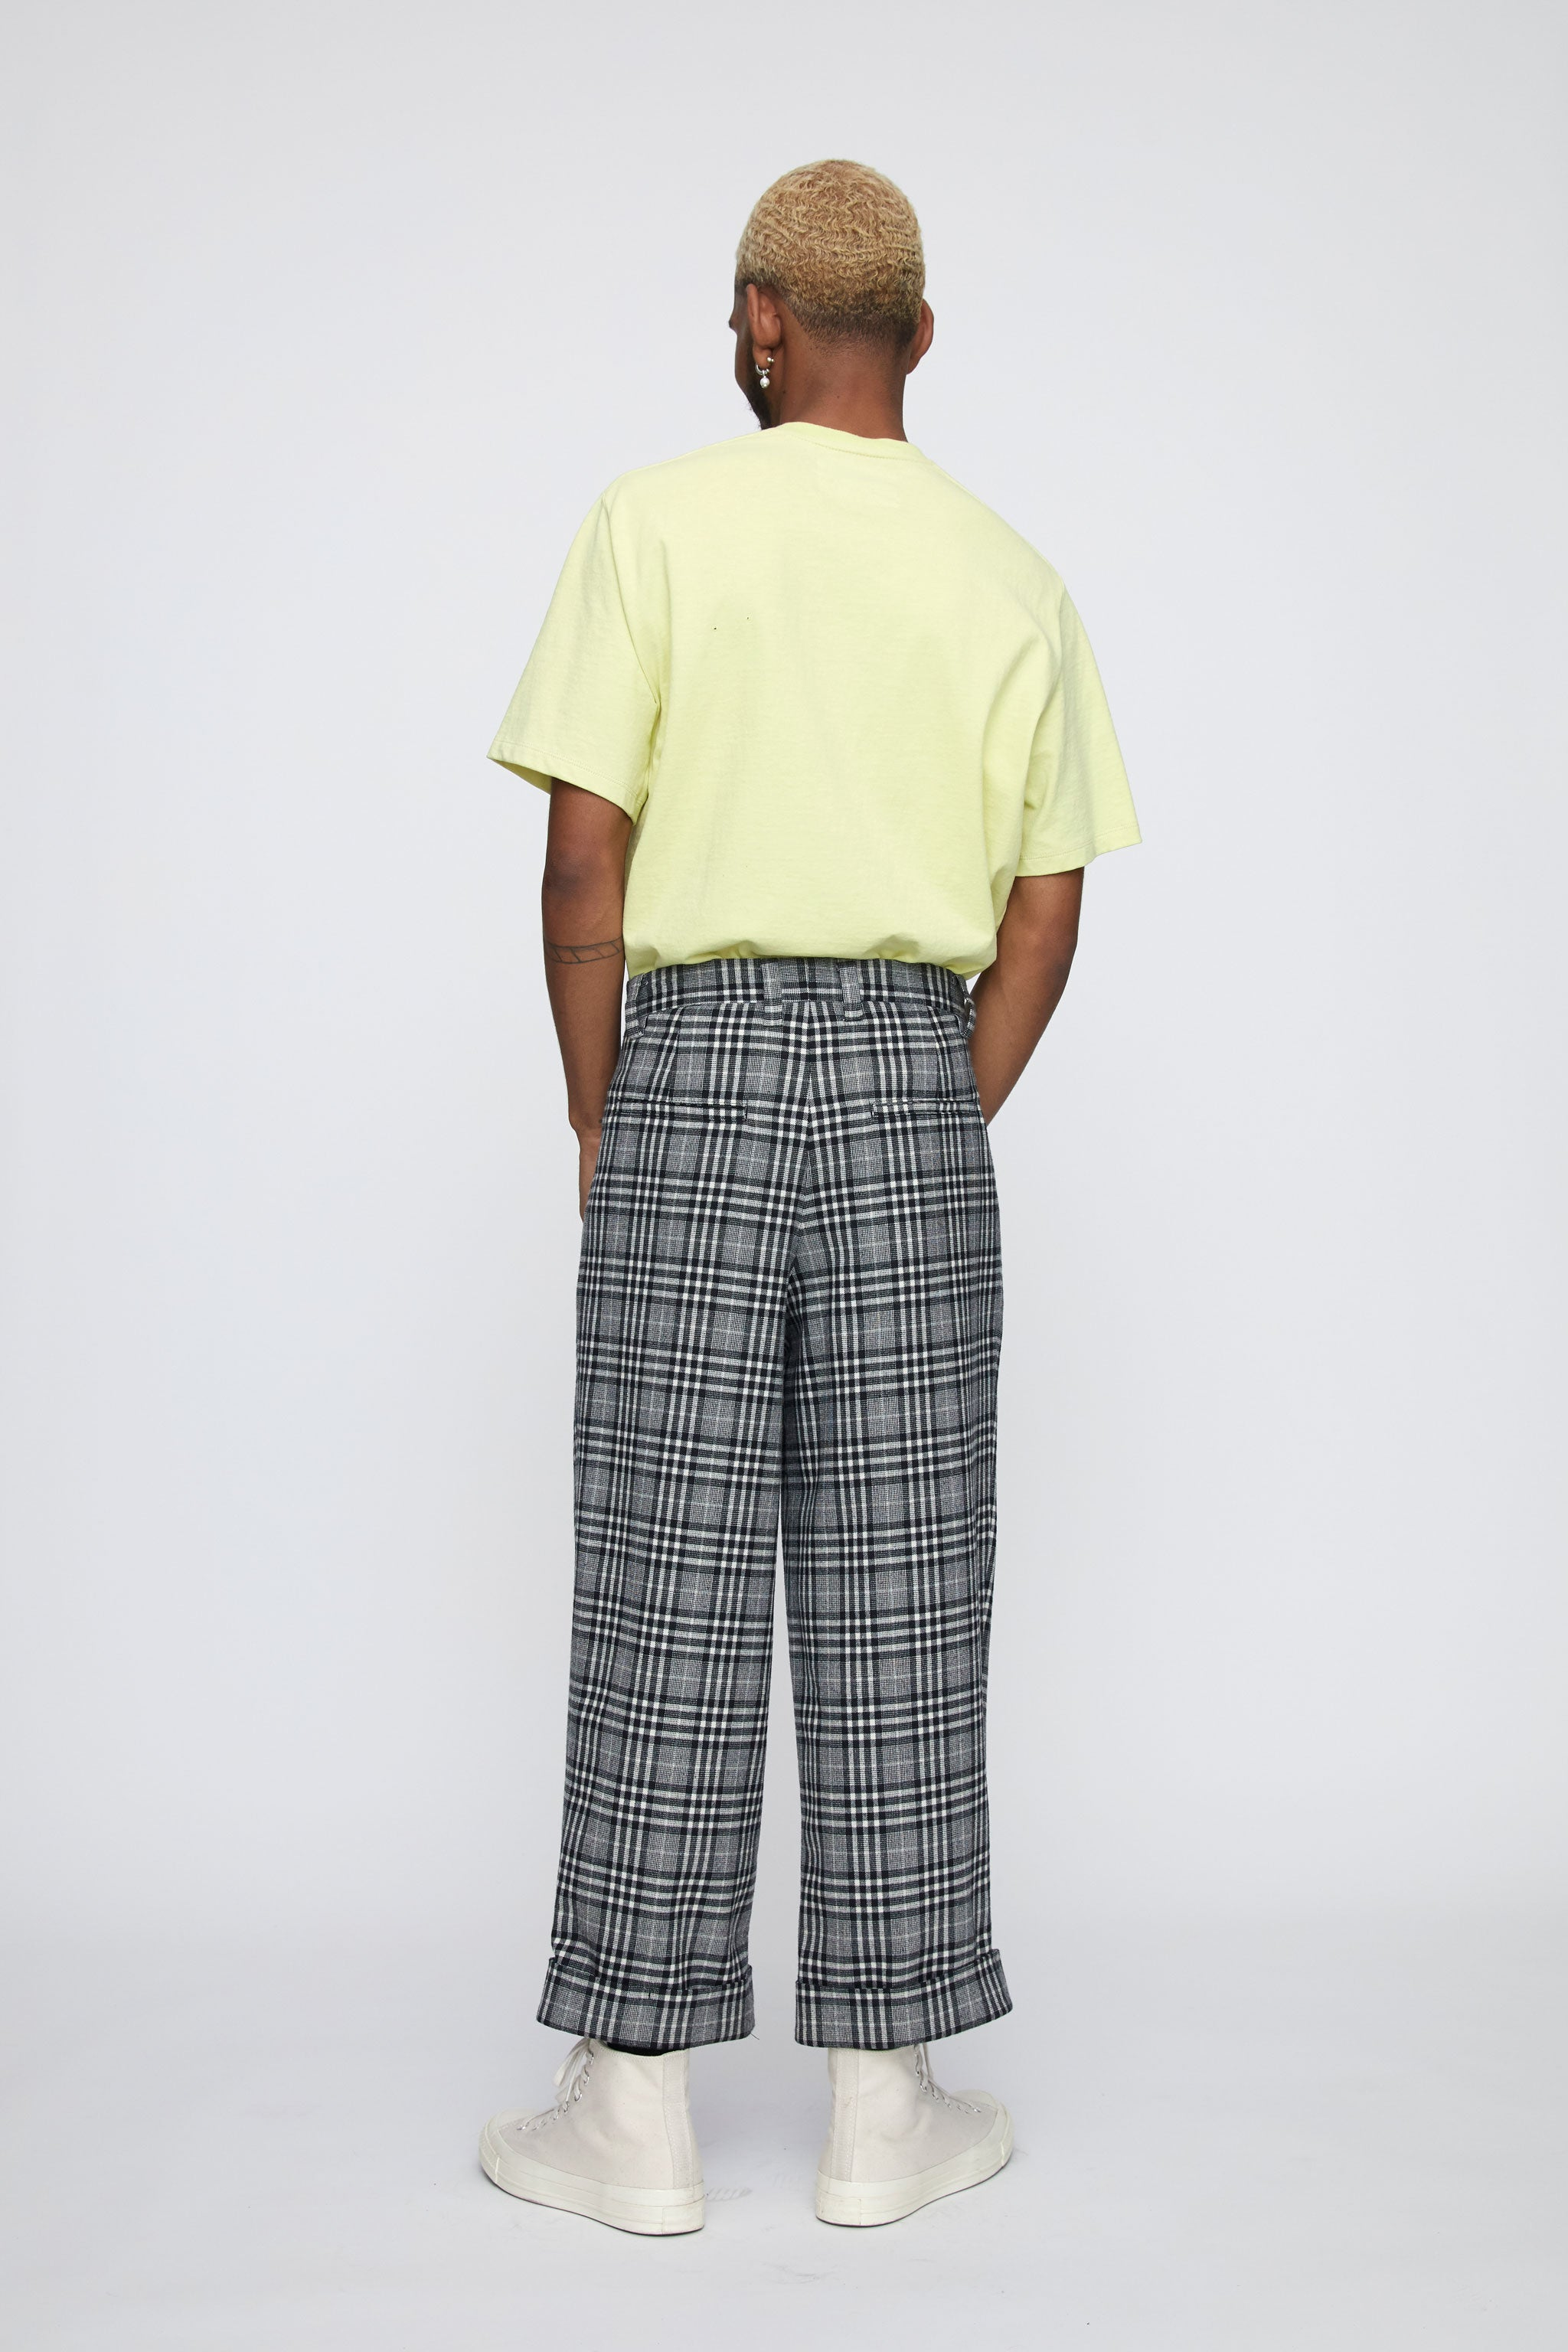 Goodfight Libertine Trouser